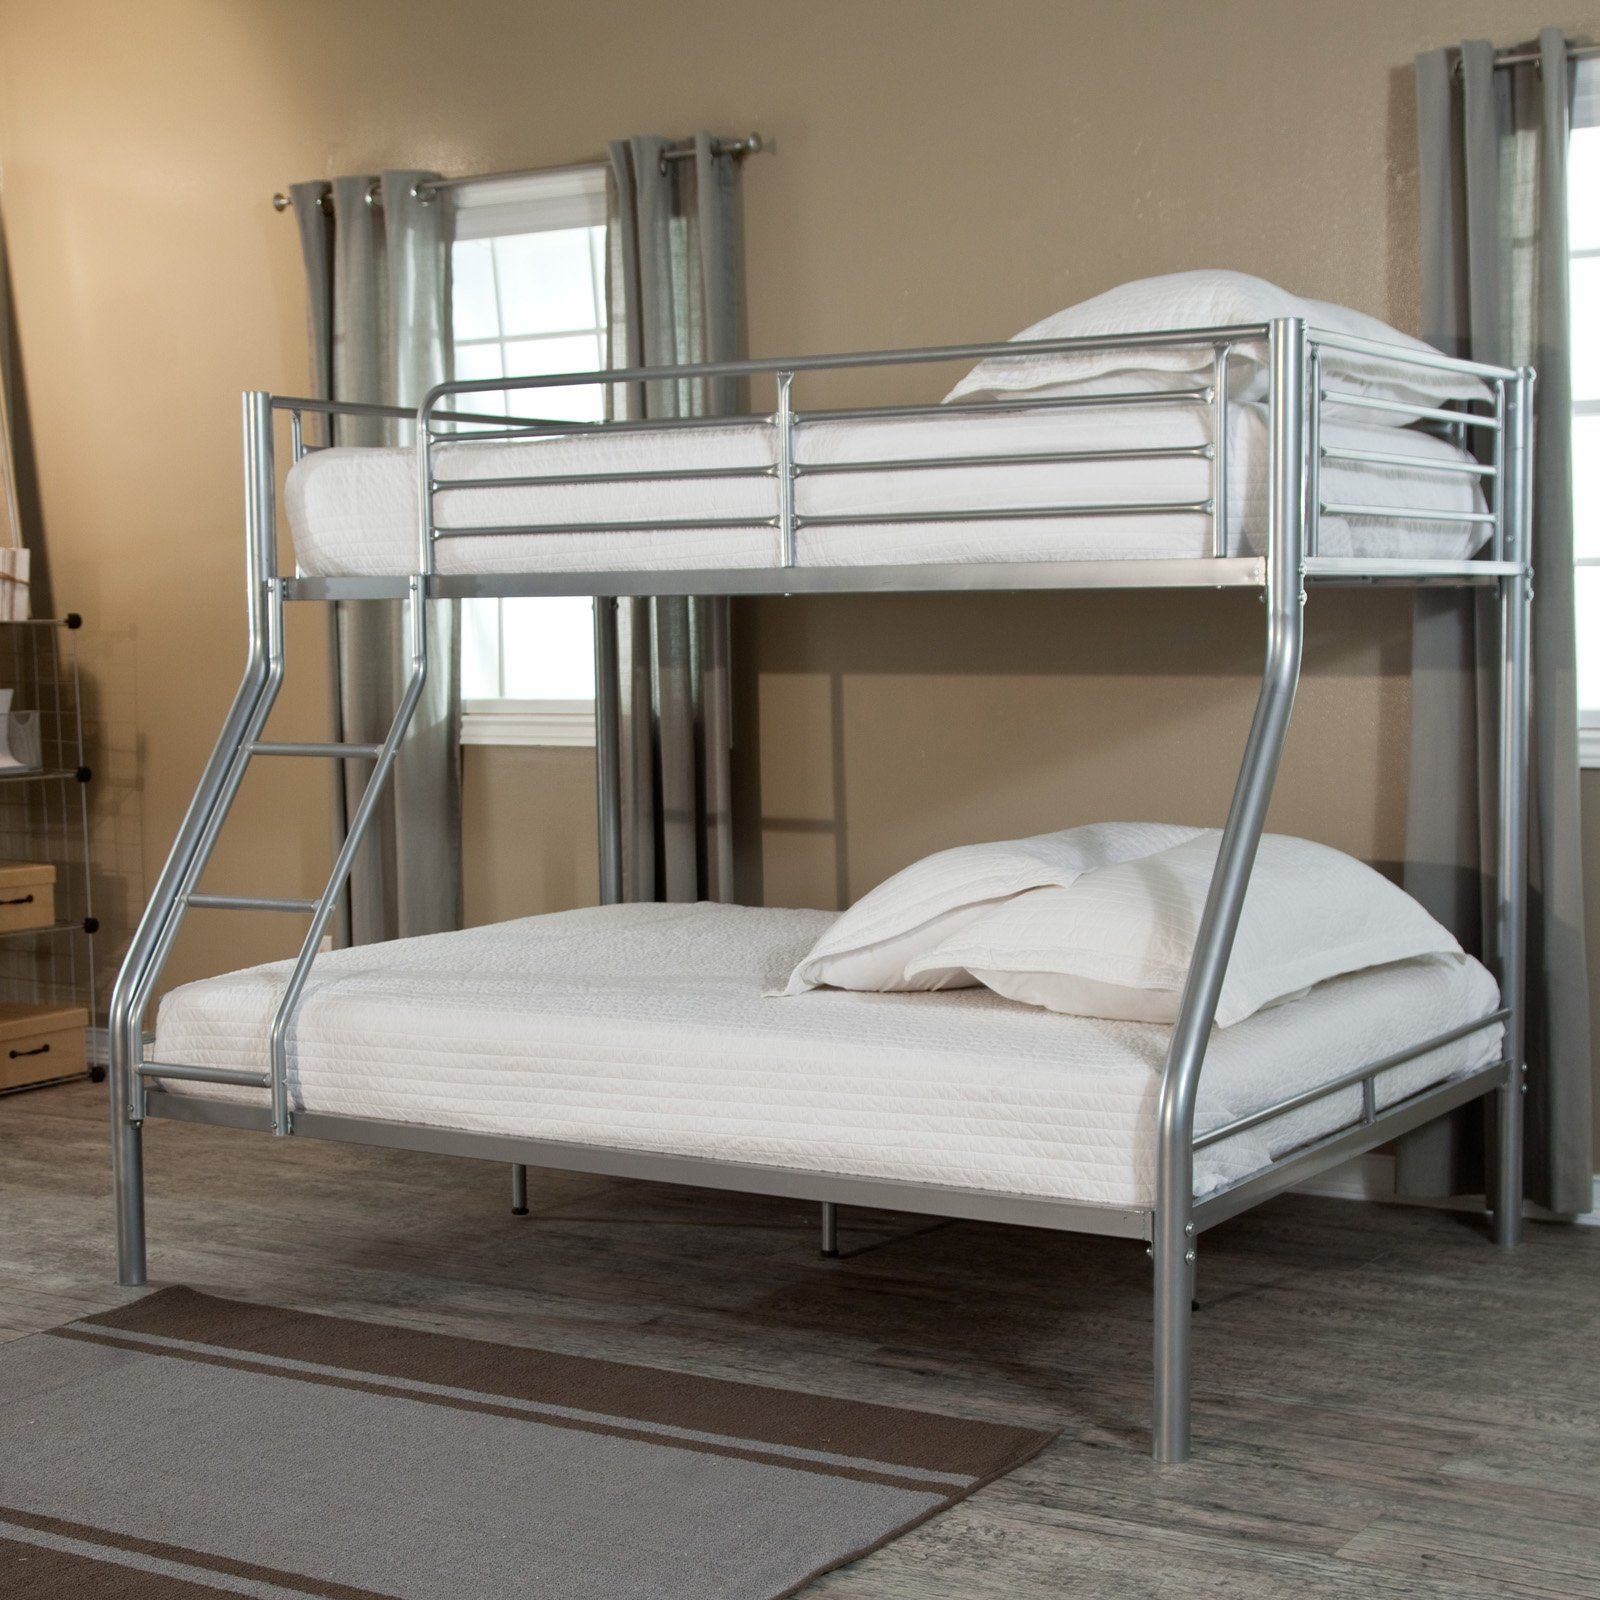 ^ 17 Best images about Pipe/Industrial Beds & Bunks on Pinterest ...